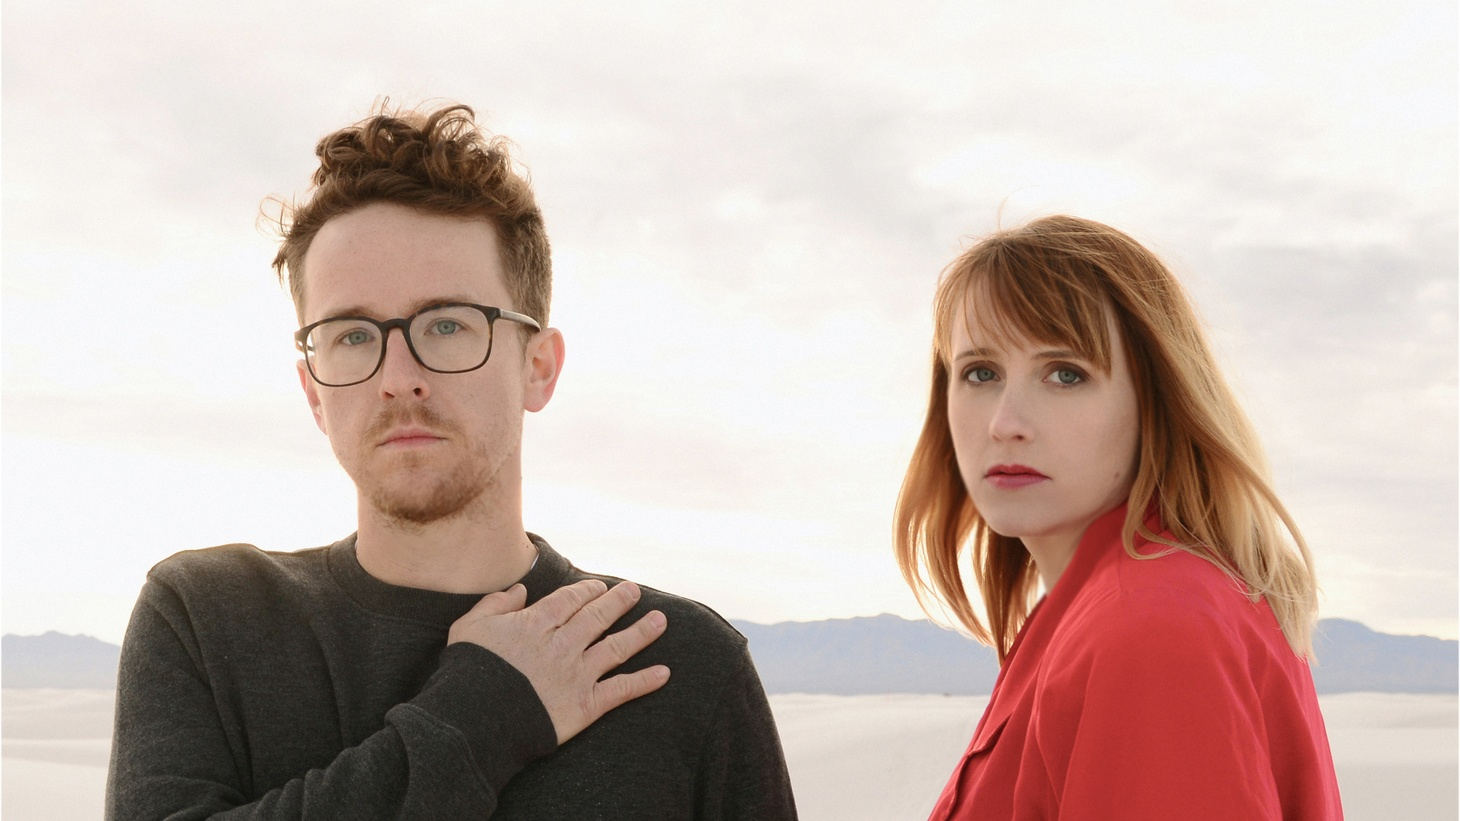 Wye Oak is the perfect combo of indie rock and folk, and their latest release is their best yet.